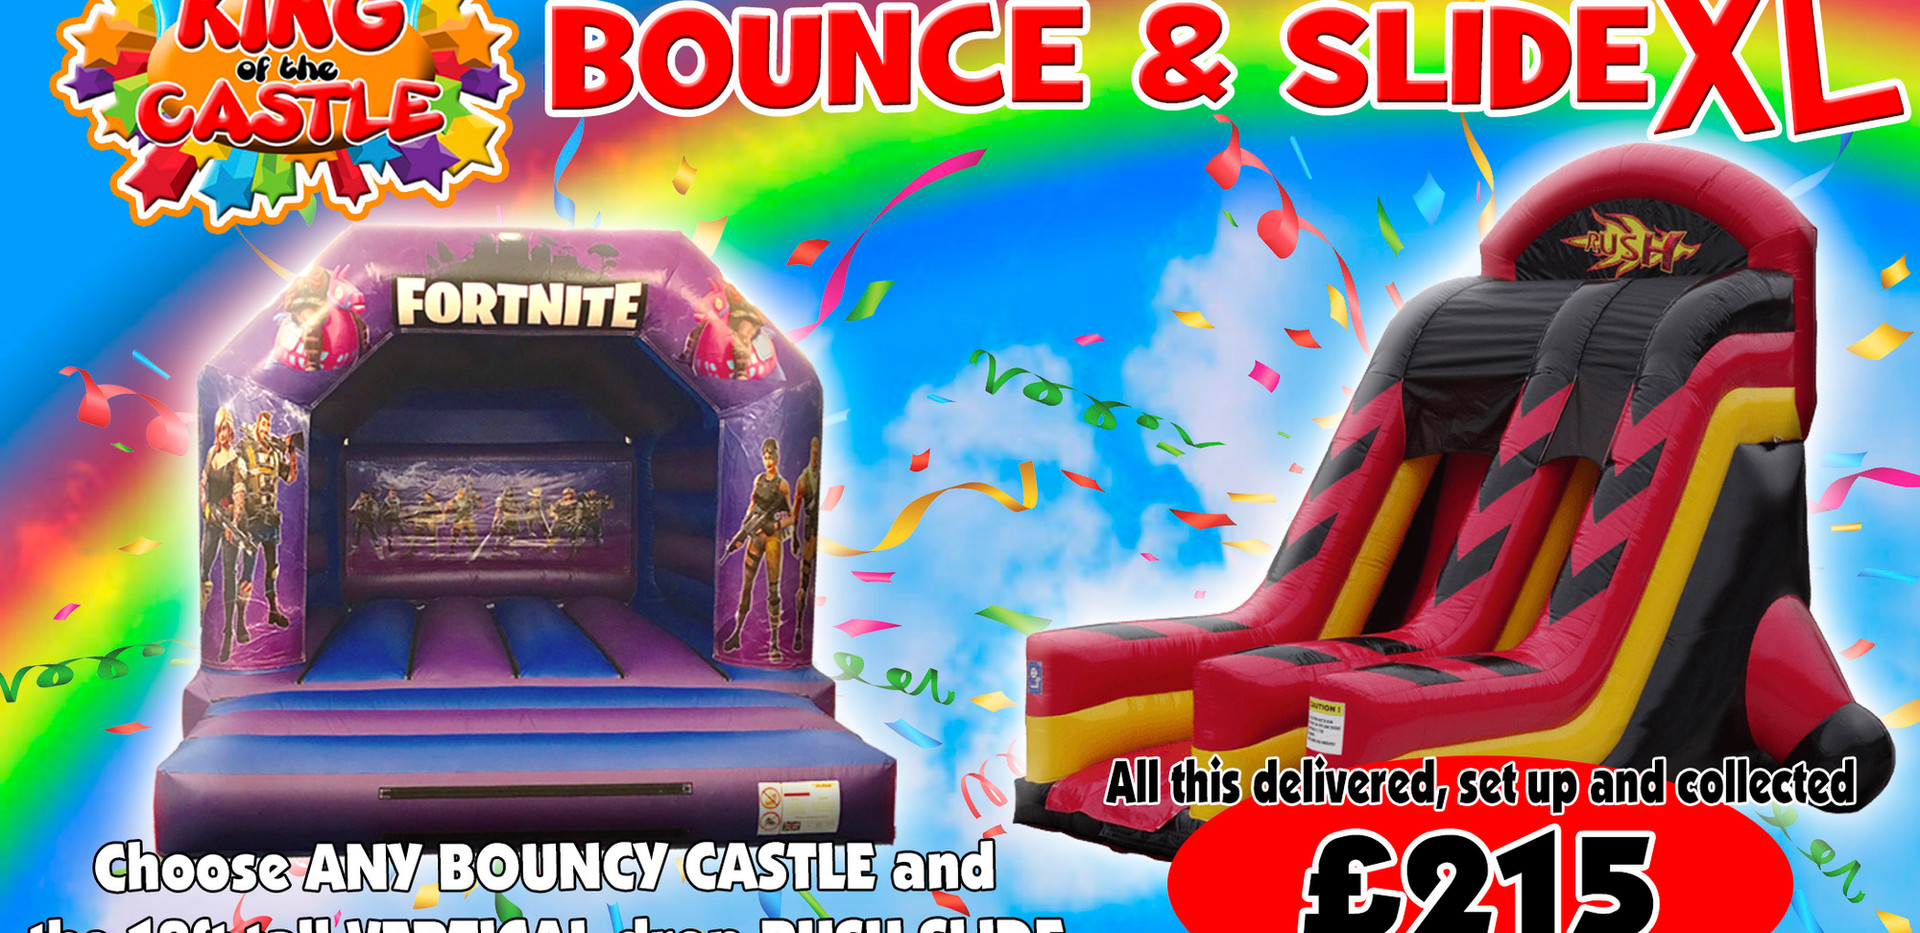 Package - Bounce and Slide XL.jpg